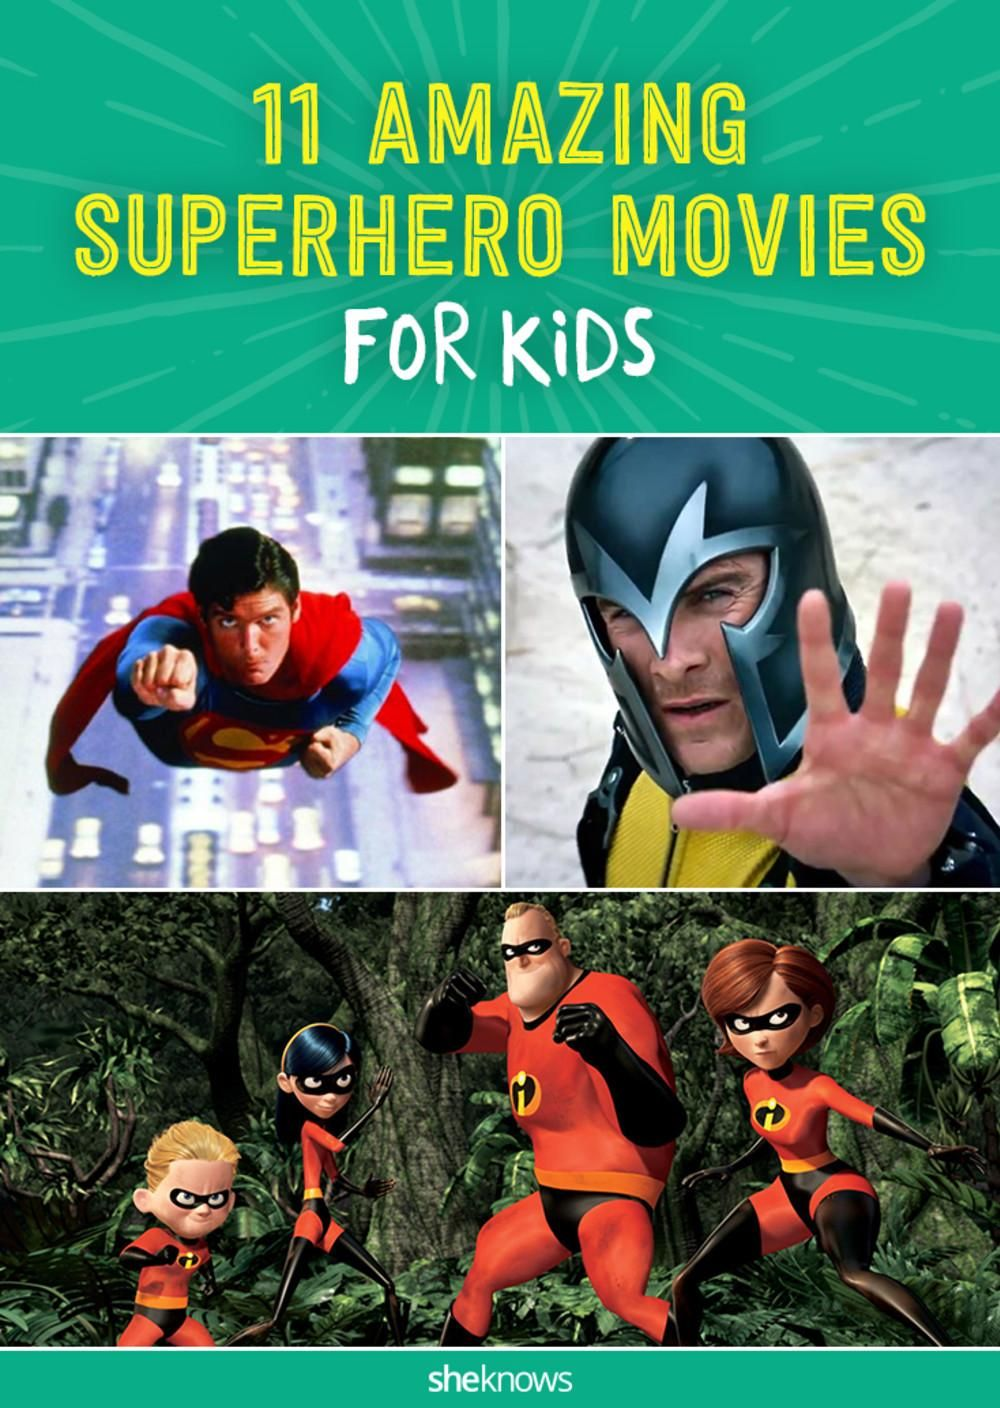 Superhero moves for kids that aren't too scary -- a great list!